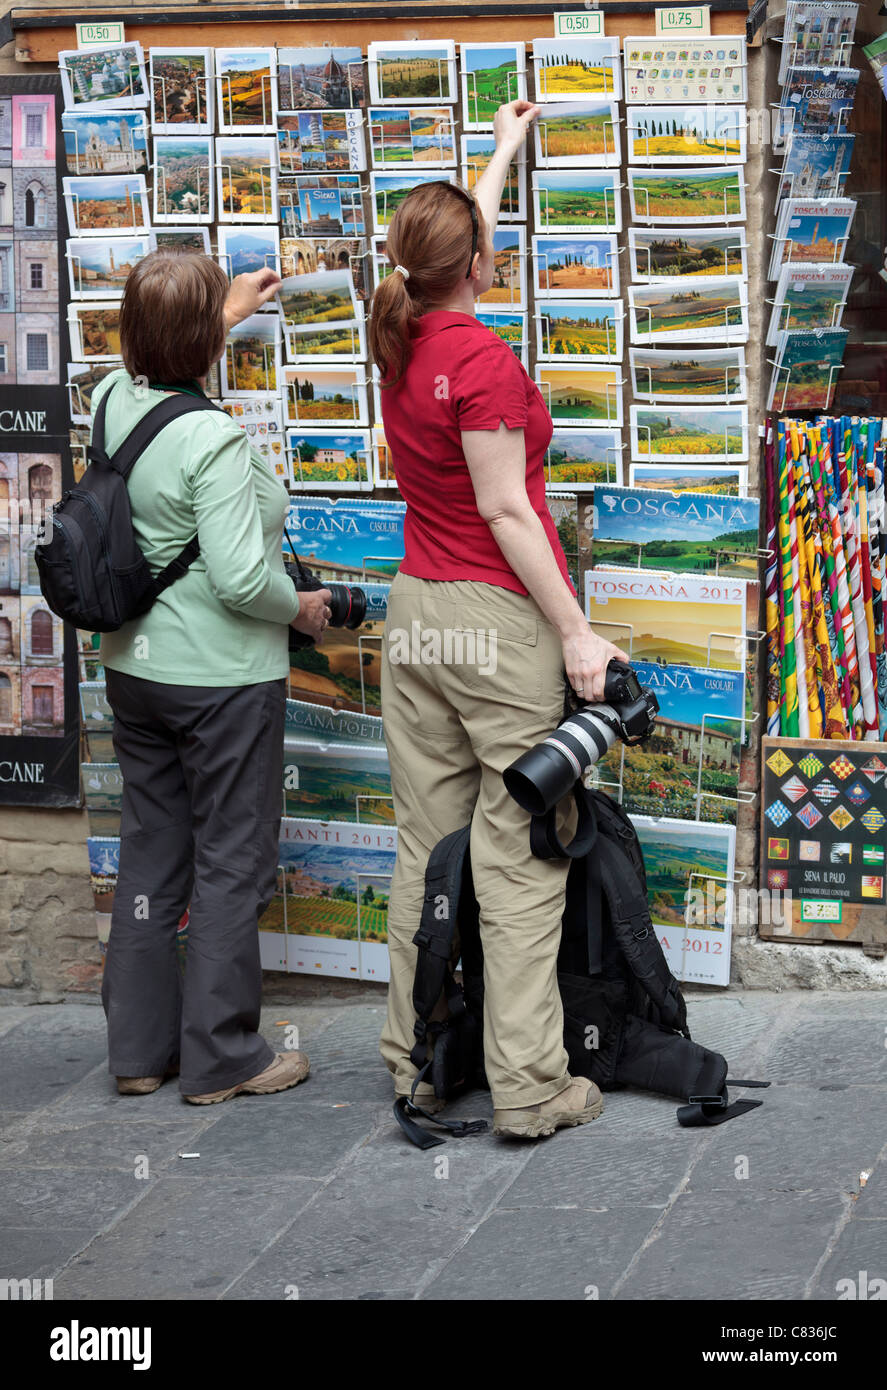 Visitors to Sienna looking at Tuscany postcards on a rack. - Stock Image